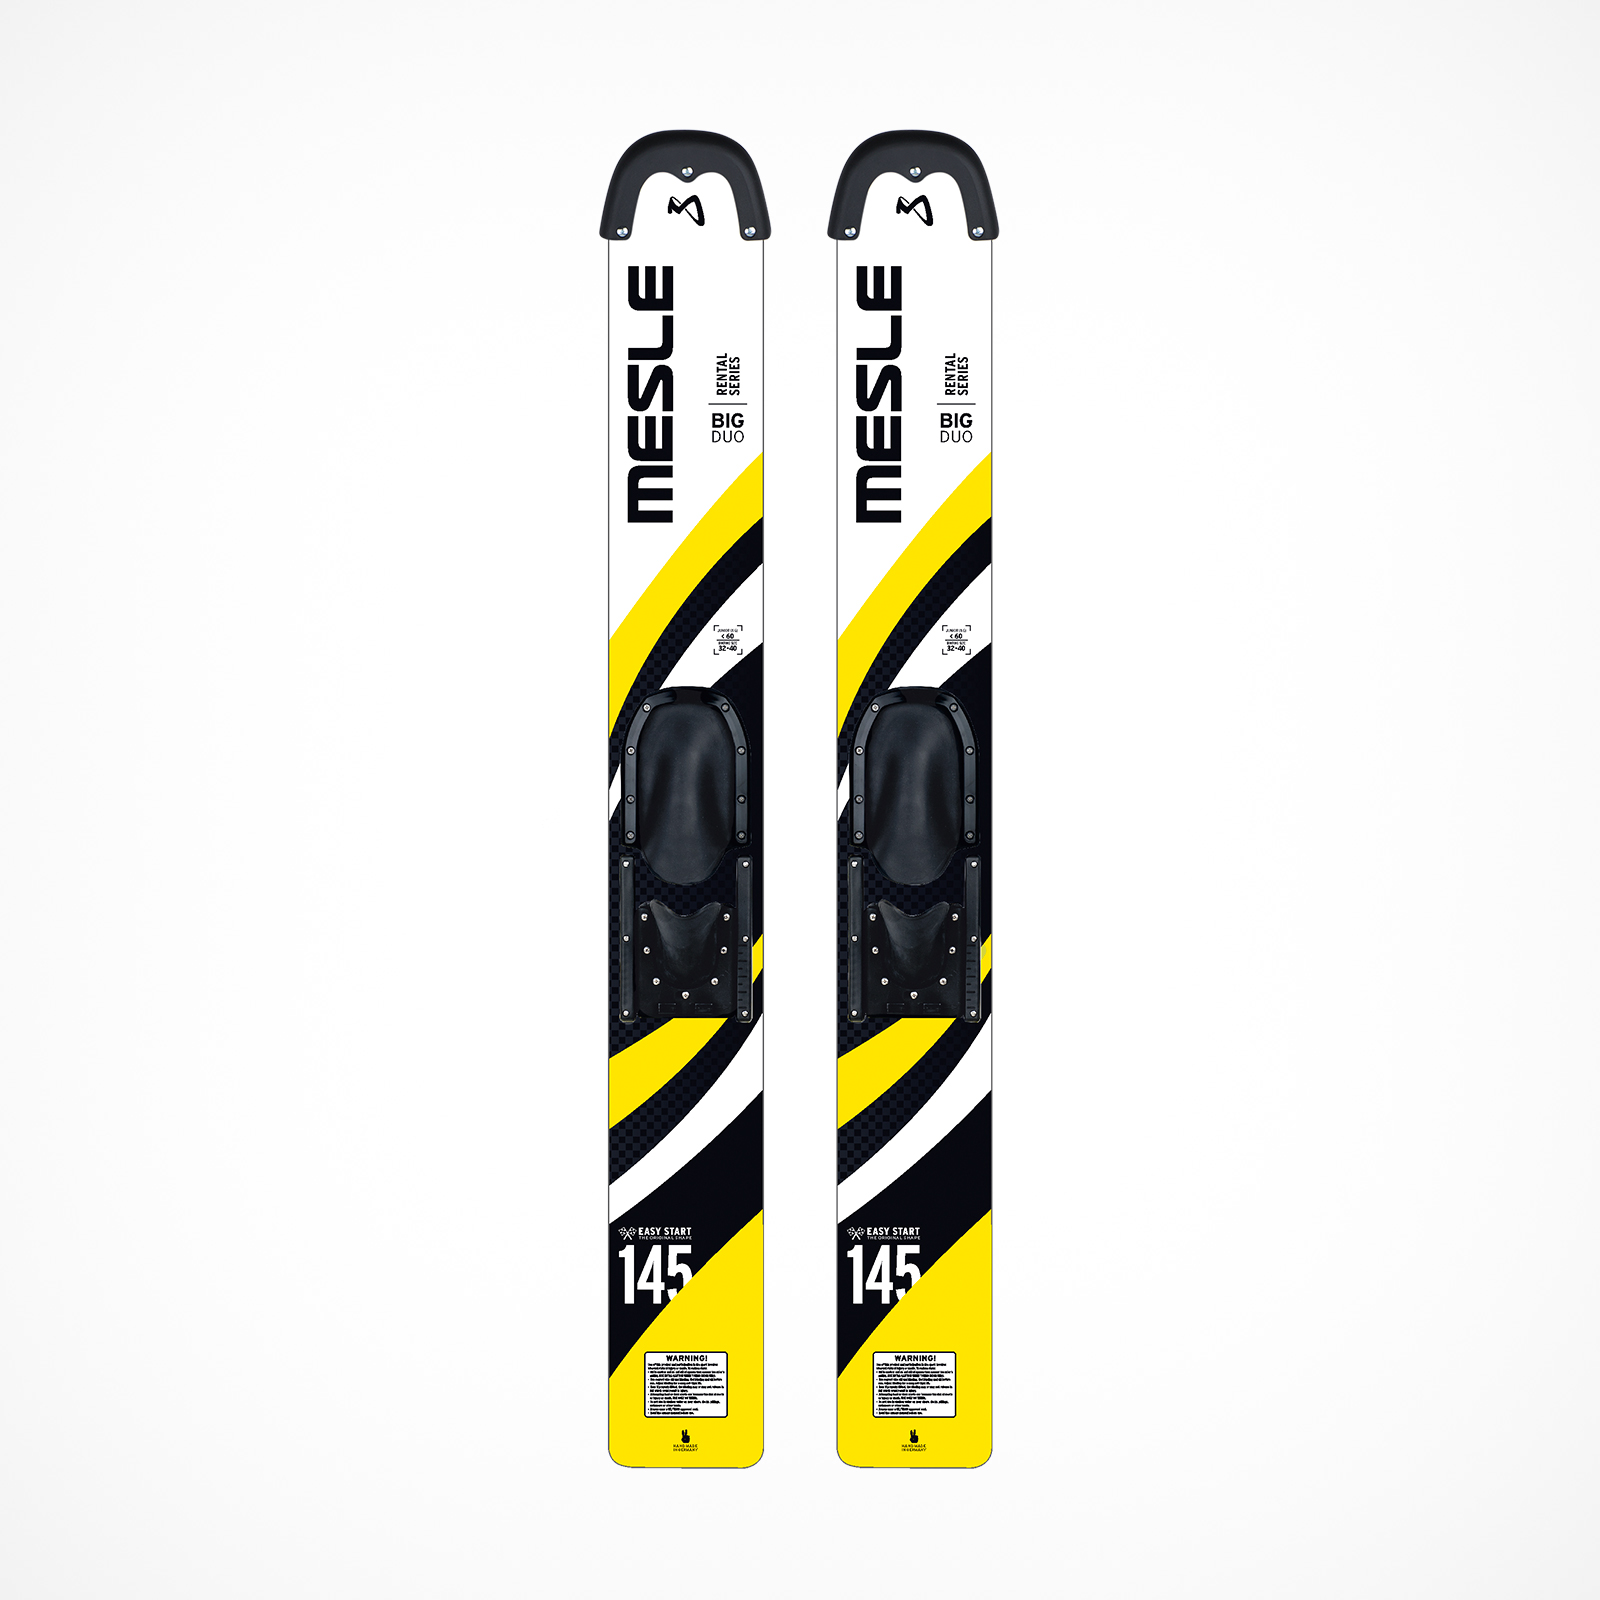 MESLE Big Duo 145cm, yellow, Rentalski with tip guard for children